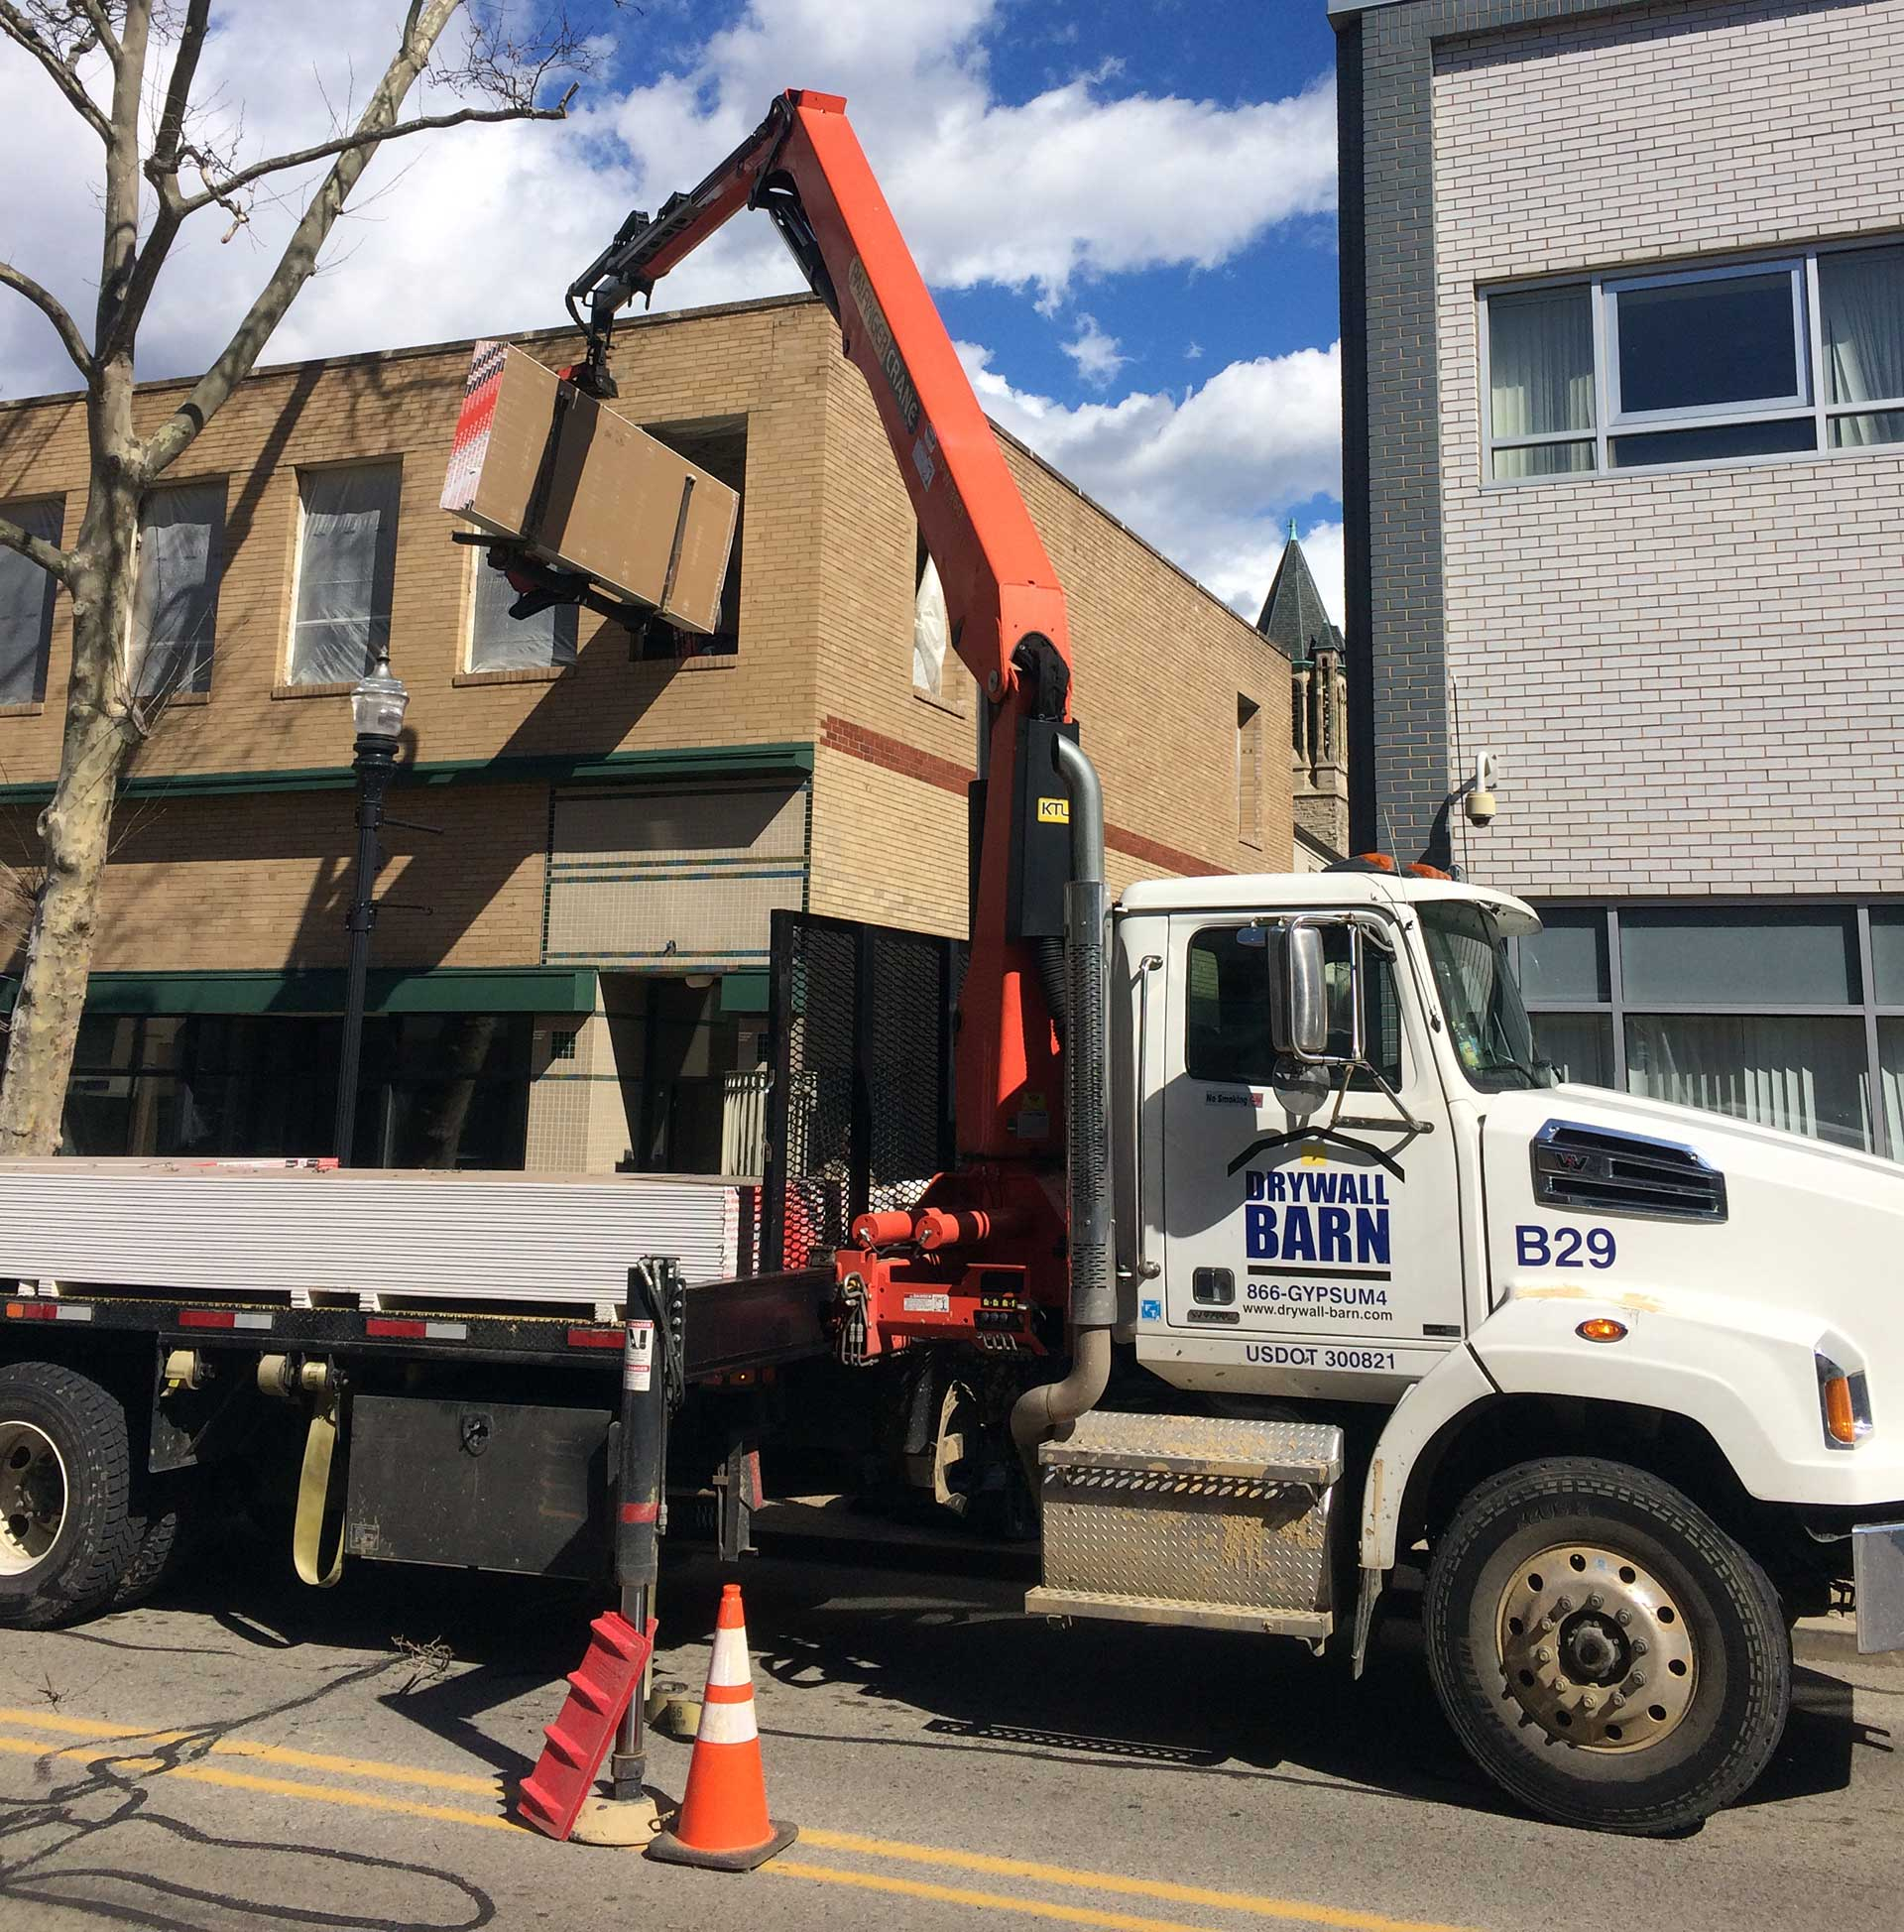 Drywall Barn Boom Truck Delivering Second Story